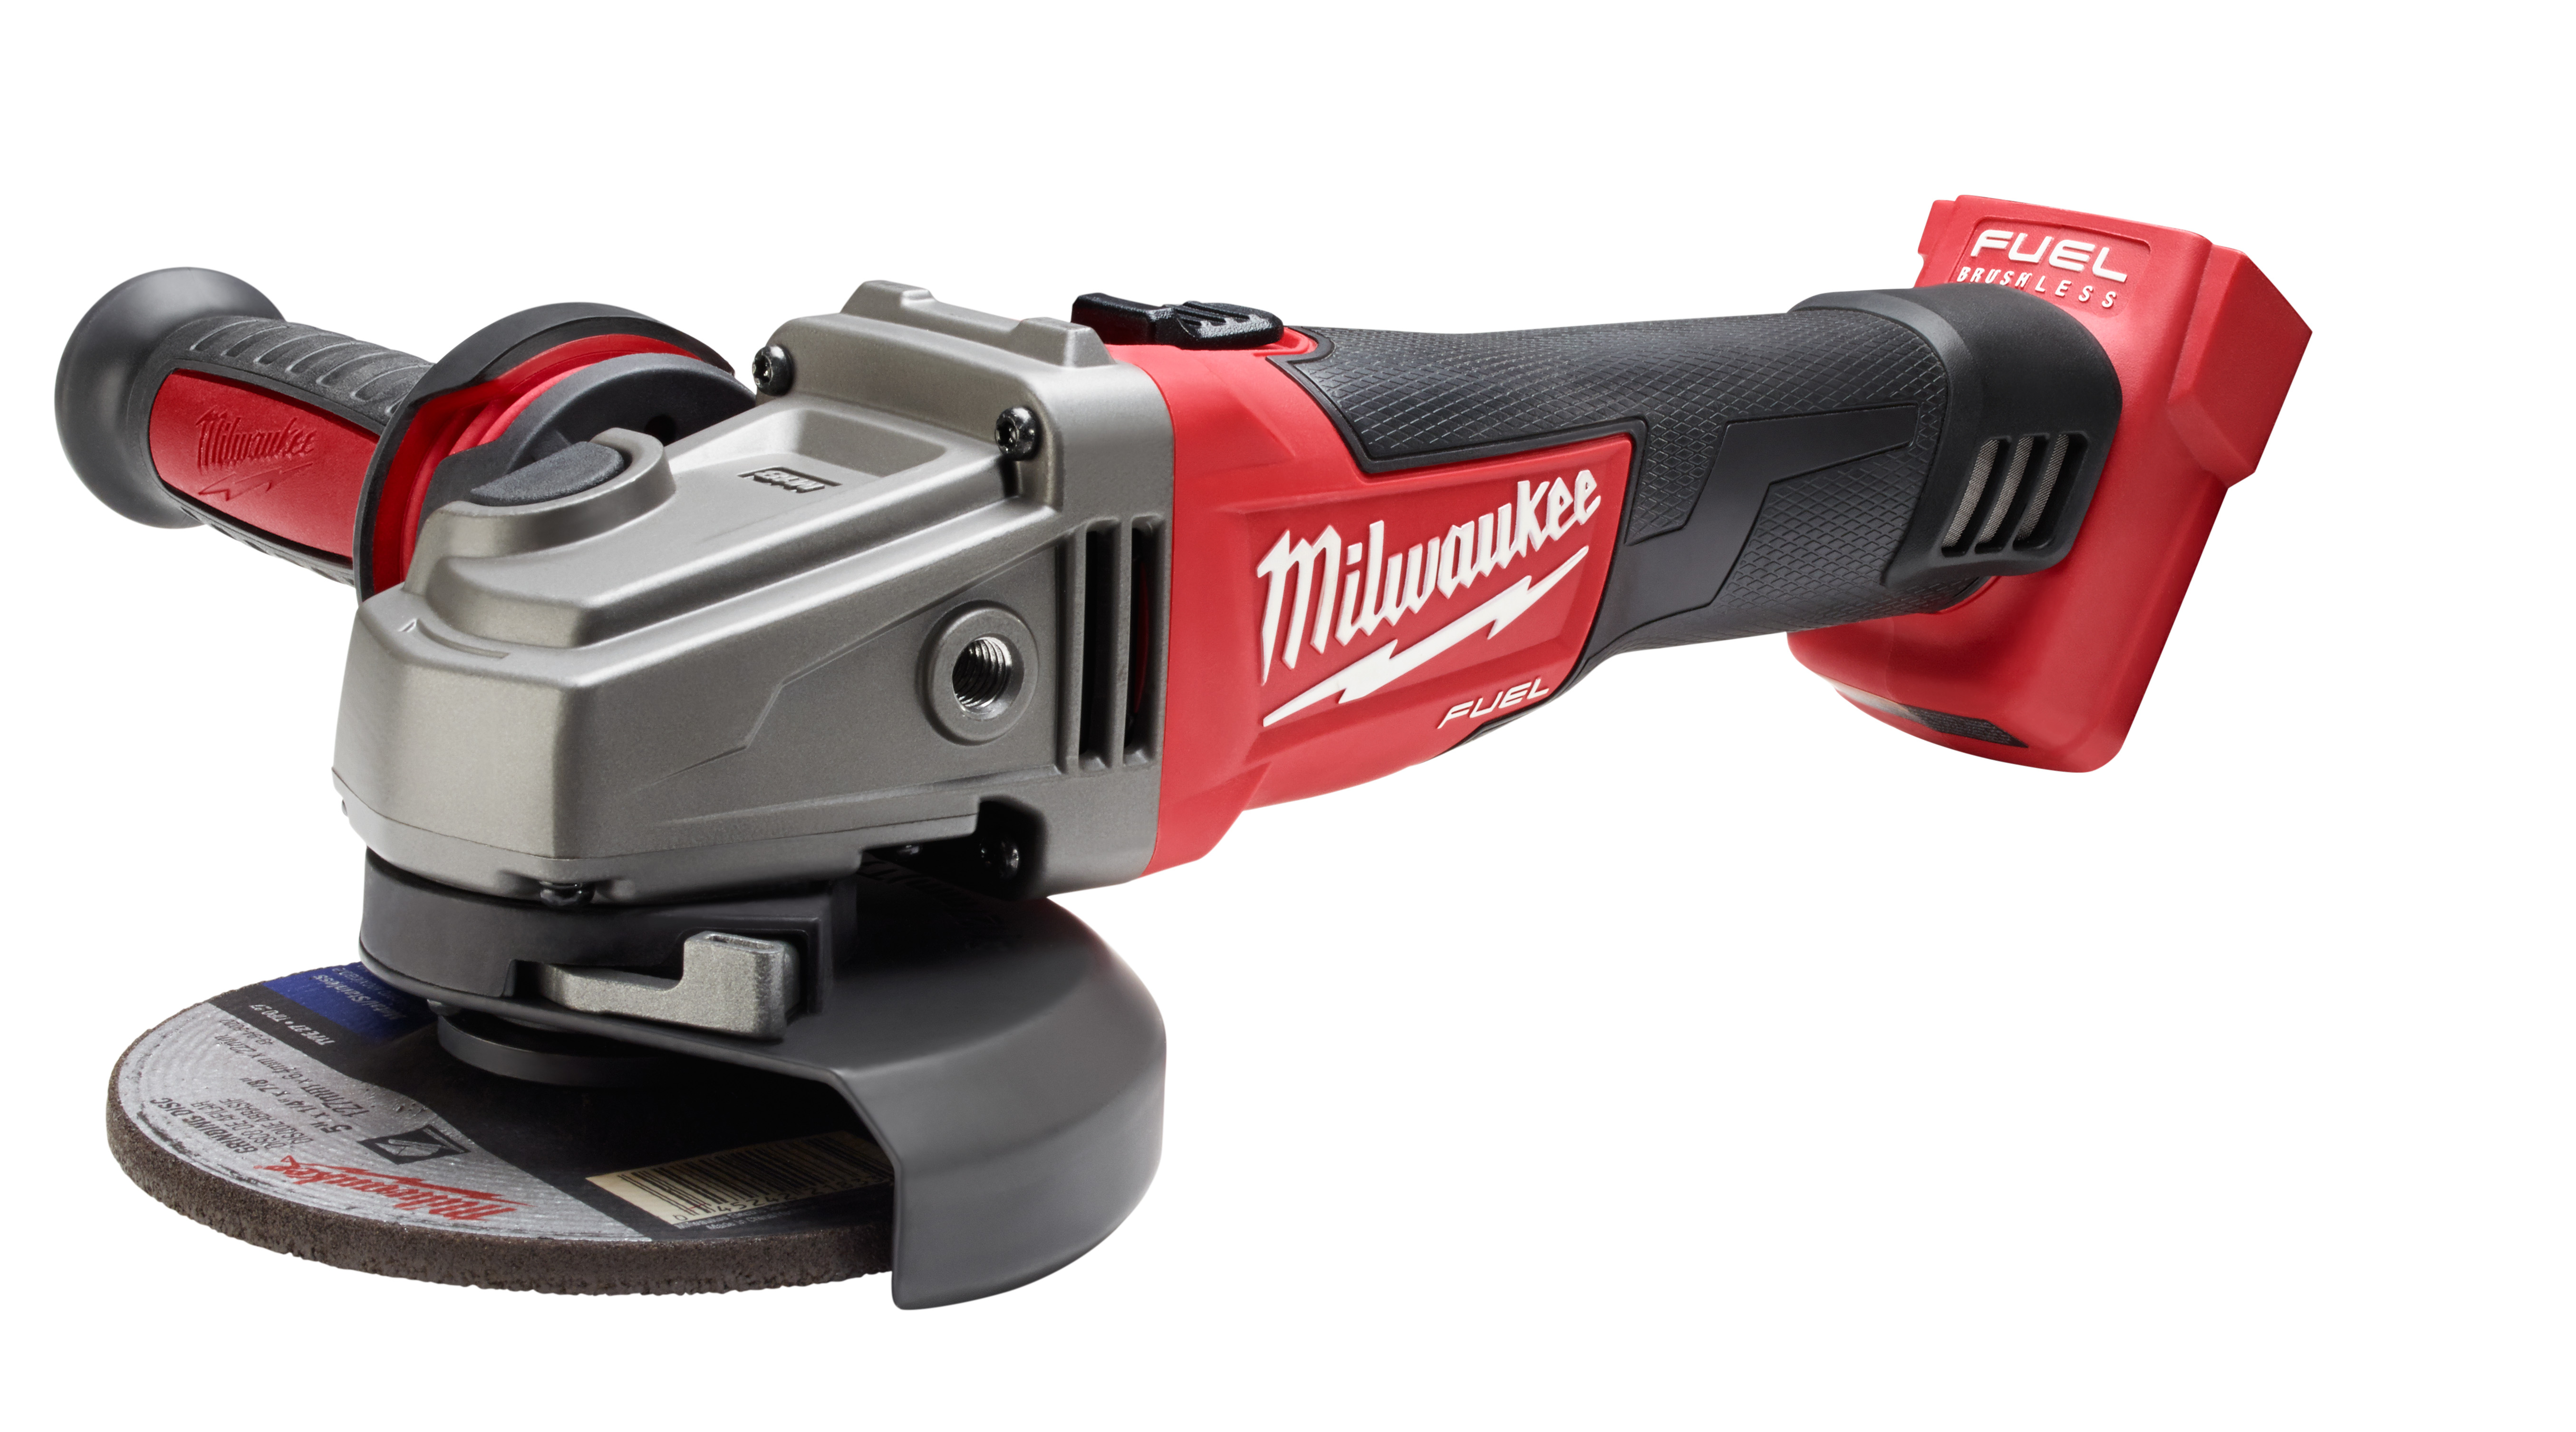 Milwaukee® M18™ FUEL™ 2781-20 Cordless Angle Grinder, 5 in Dia Wheel, 5/8-11 Arbor/Shank, 18 VDC, Lithium-Ion Battery, Slide with Lock-On Switch